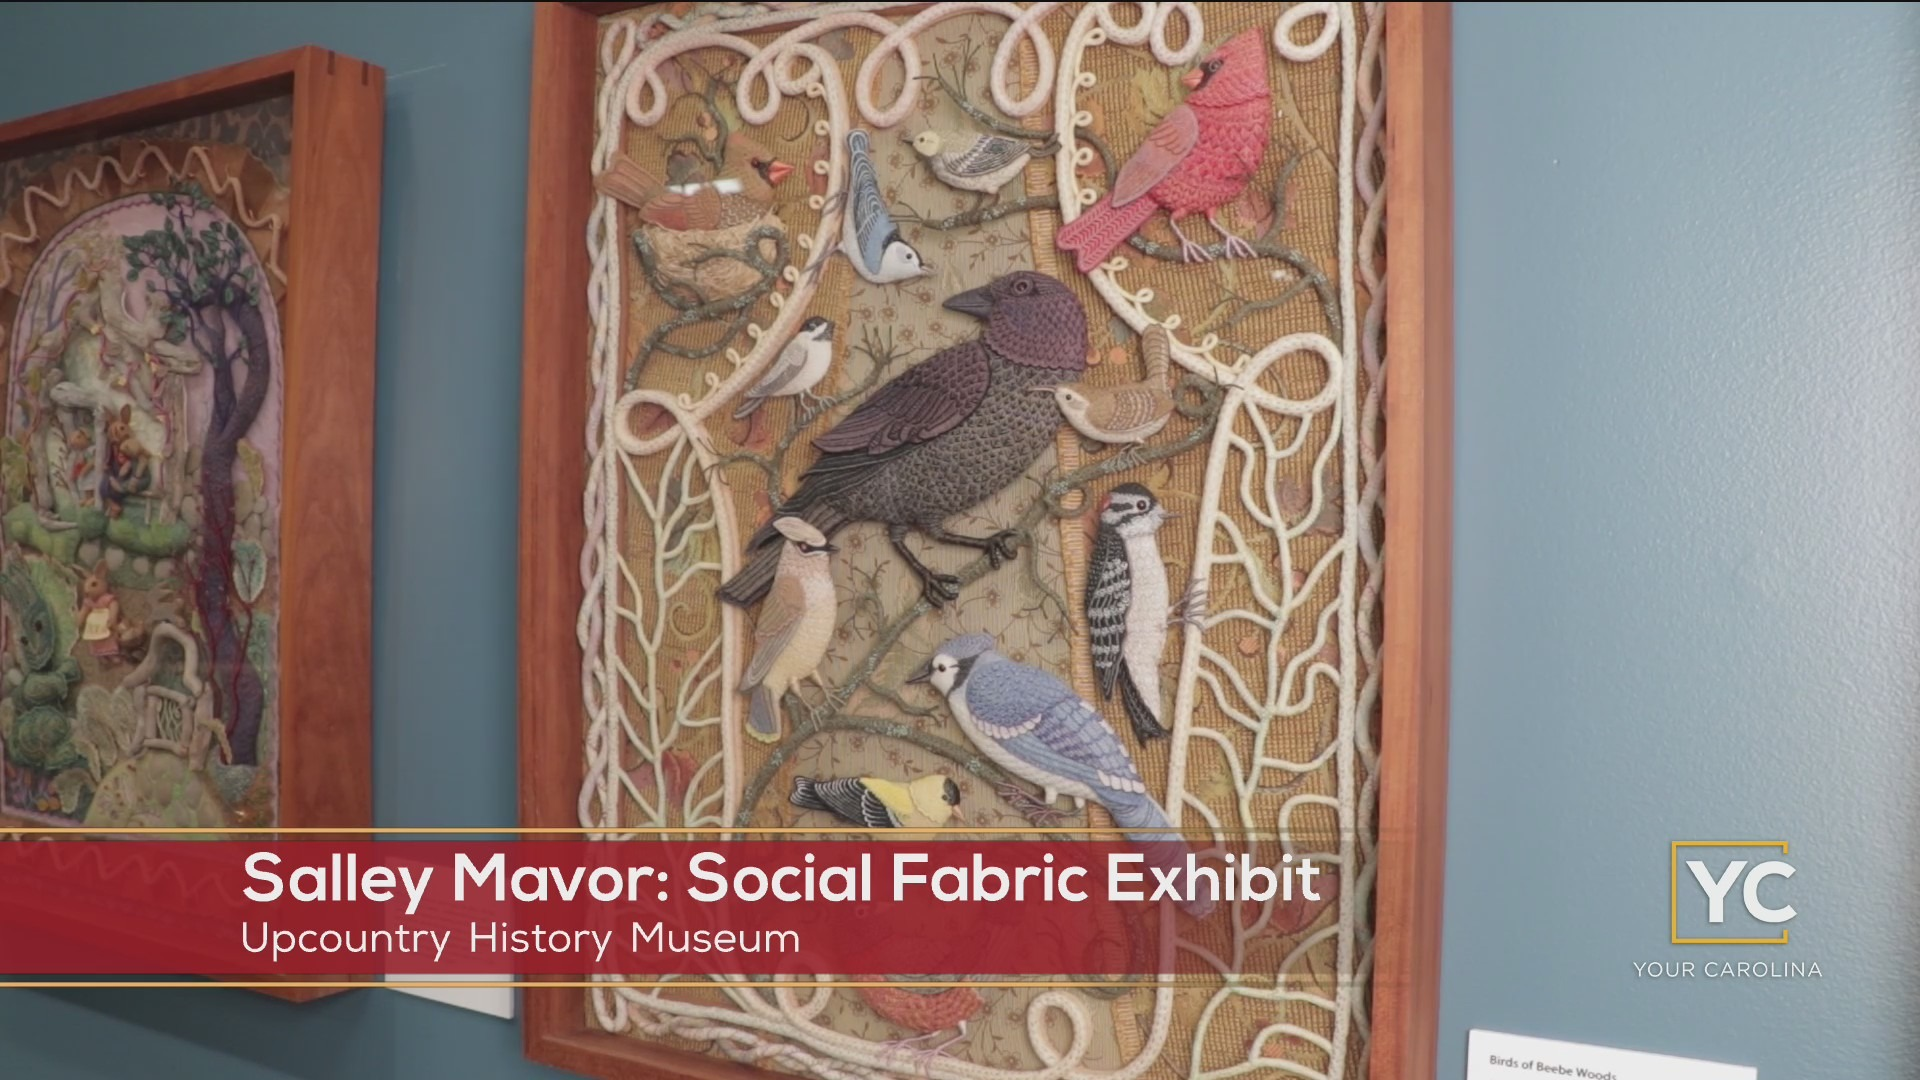 New Exhibit: Salley Mavor: Social Fabric At The Upcountry History Museum